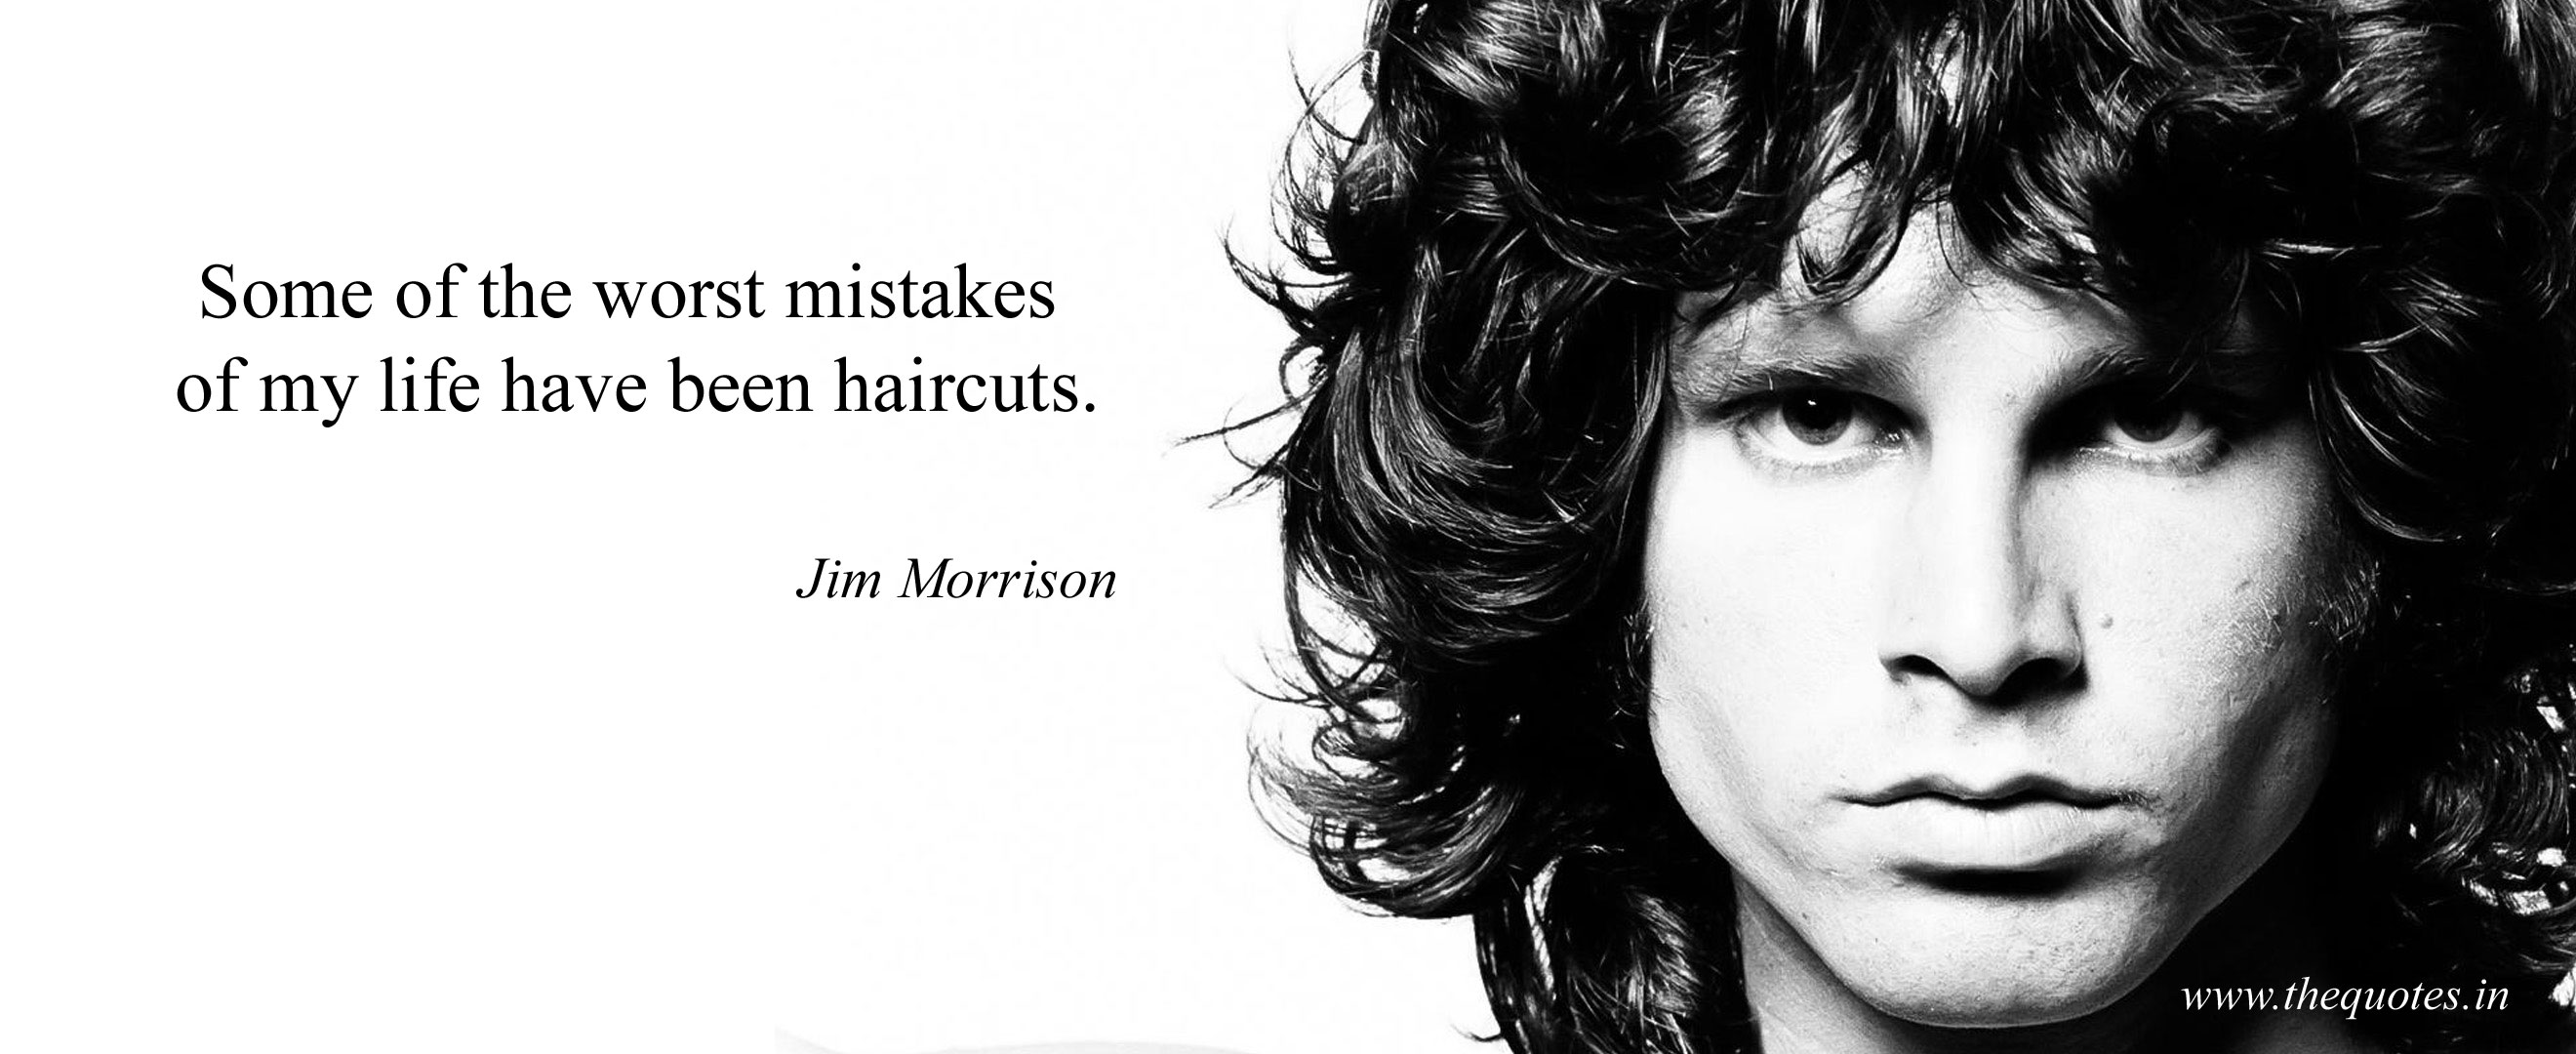 """Some of the worst mistakes of my life have been haircuts"" -Jim Morrison (2640×1080)"